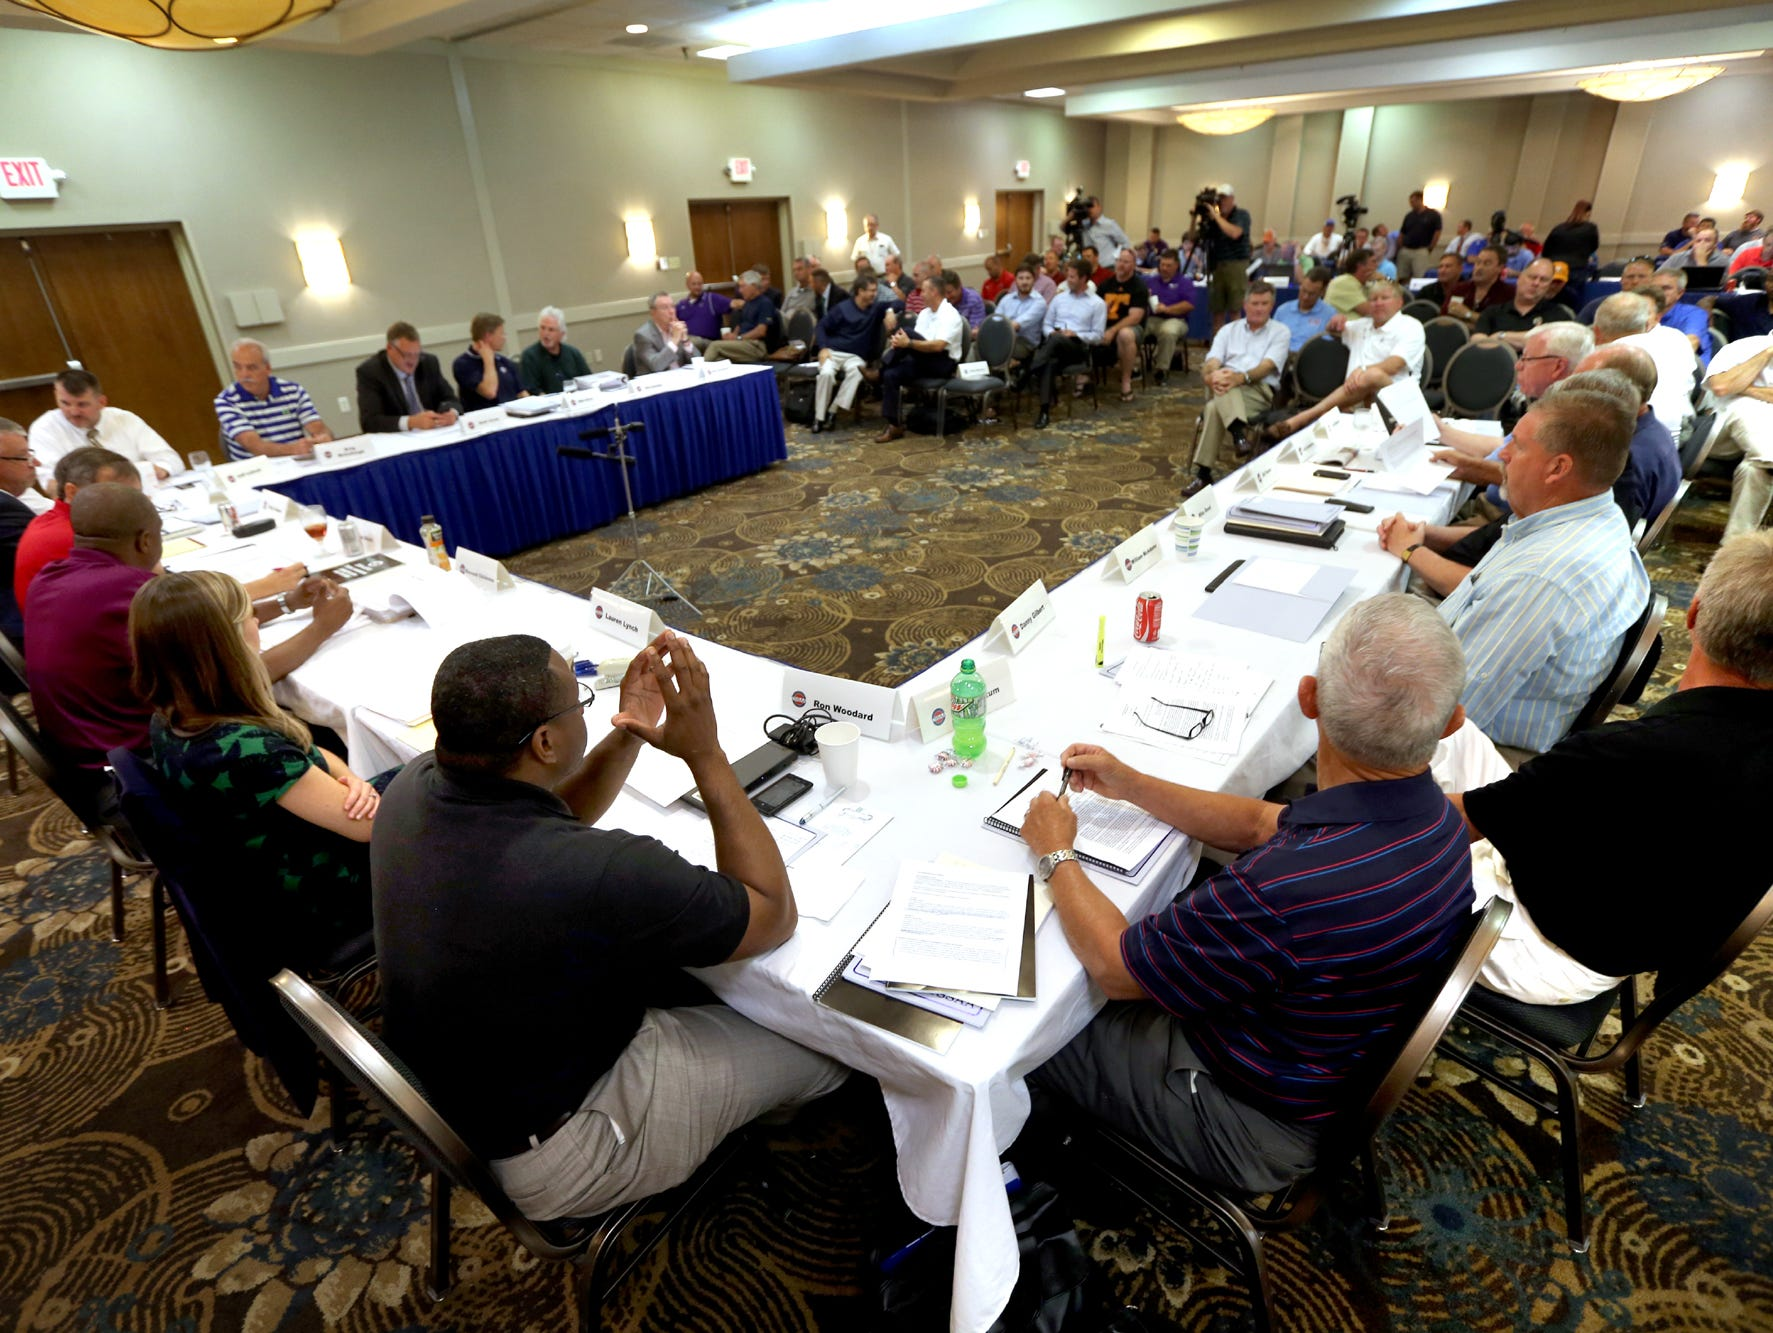 The TSSAA Legislative Council meets at the DoubleTree Hotel to vote on the private - public split on Thursday.